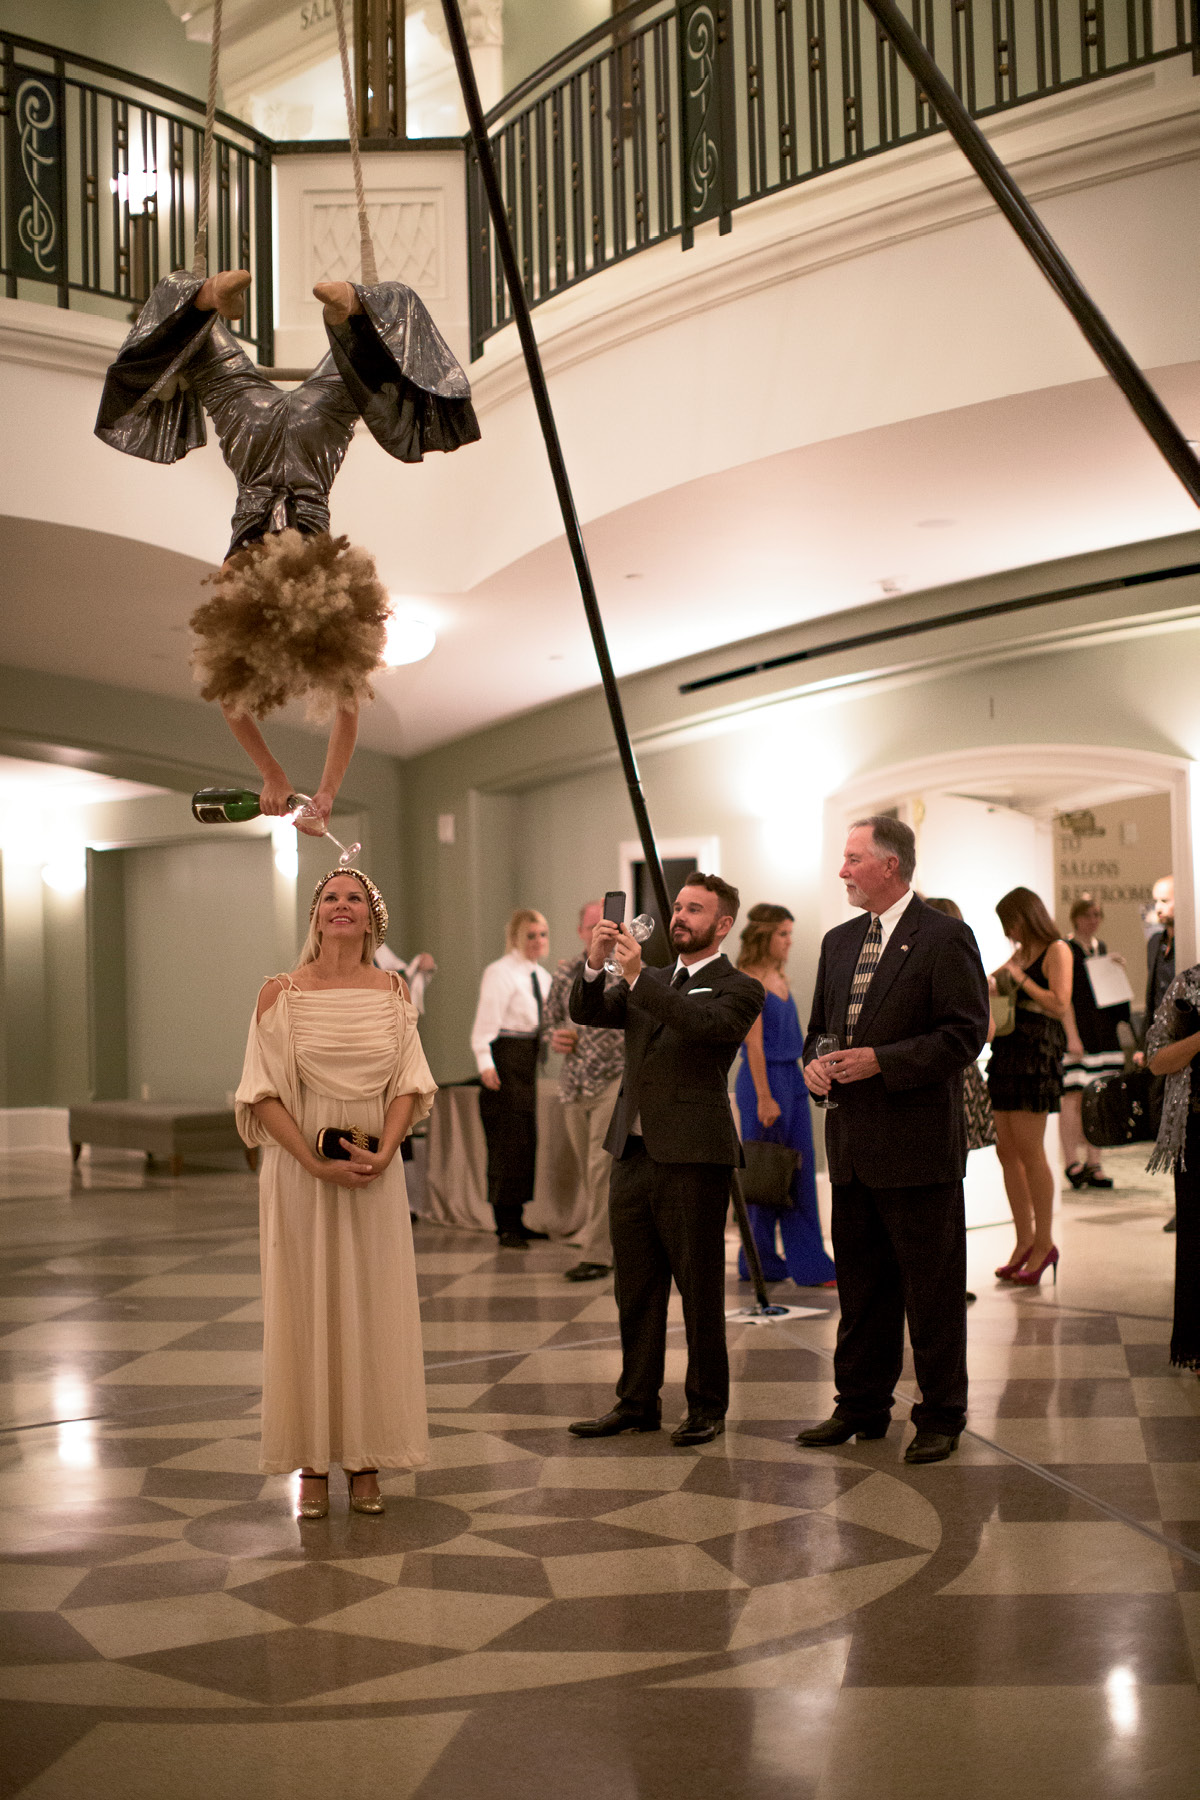 An aerialist bartender from Elevate poured Biltmore Estate bubbles from above as guests entered the Grand Foyer